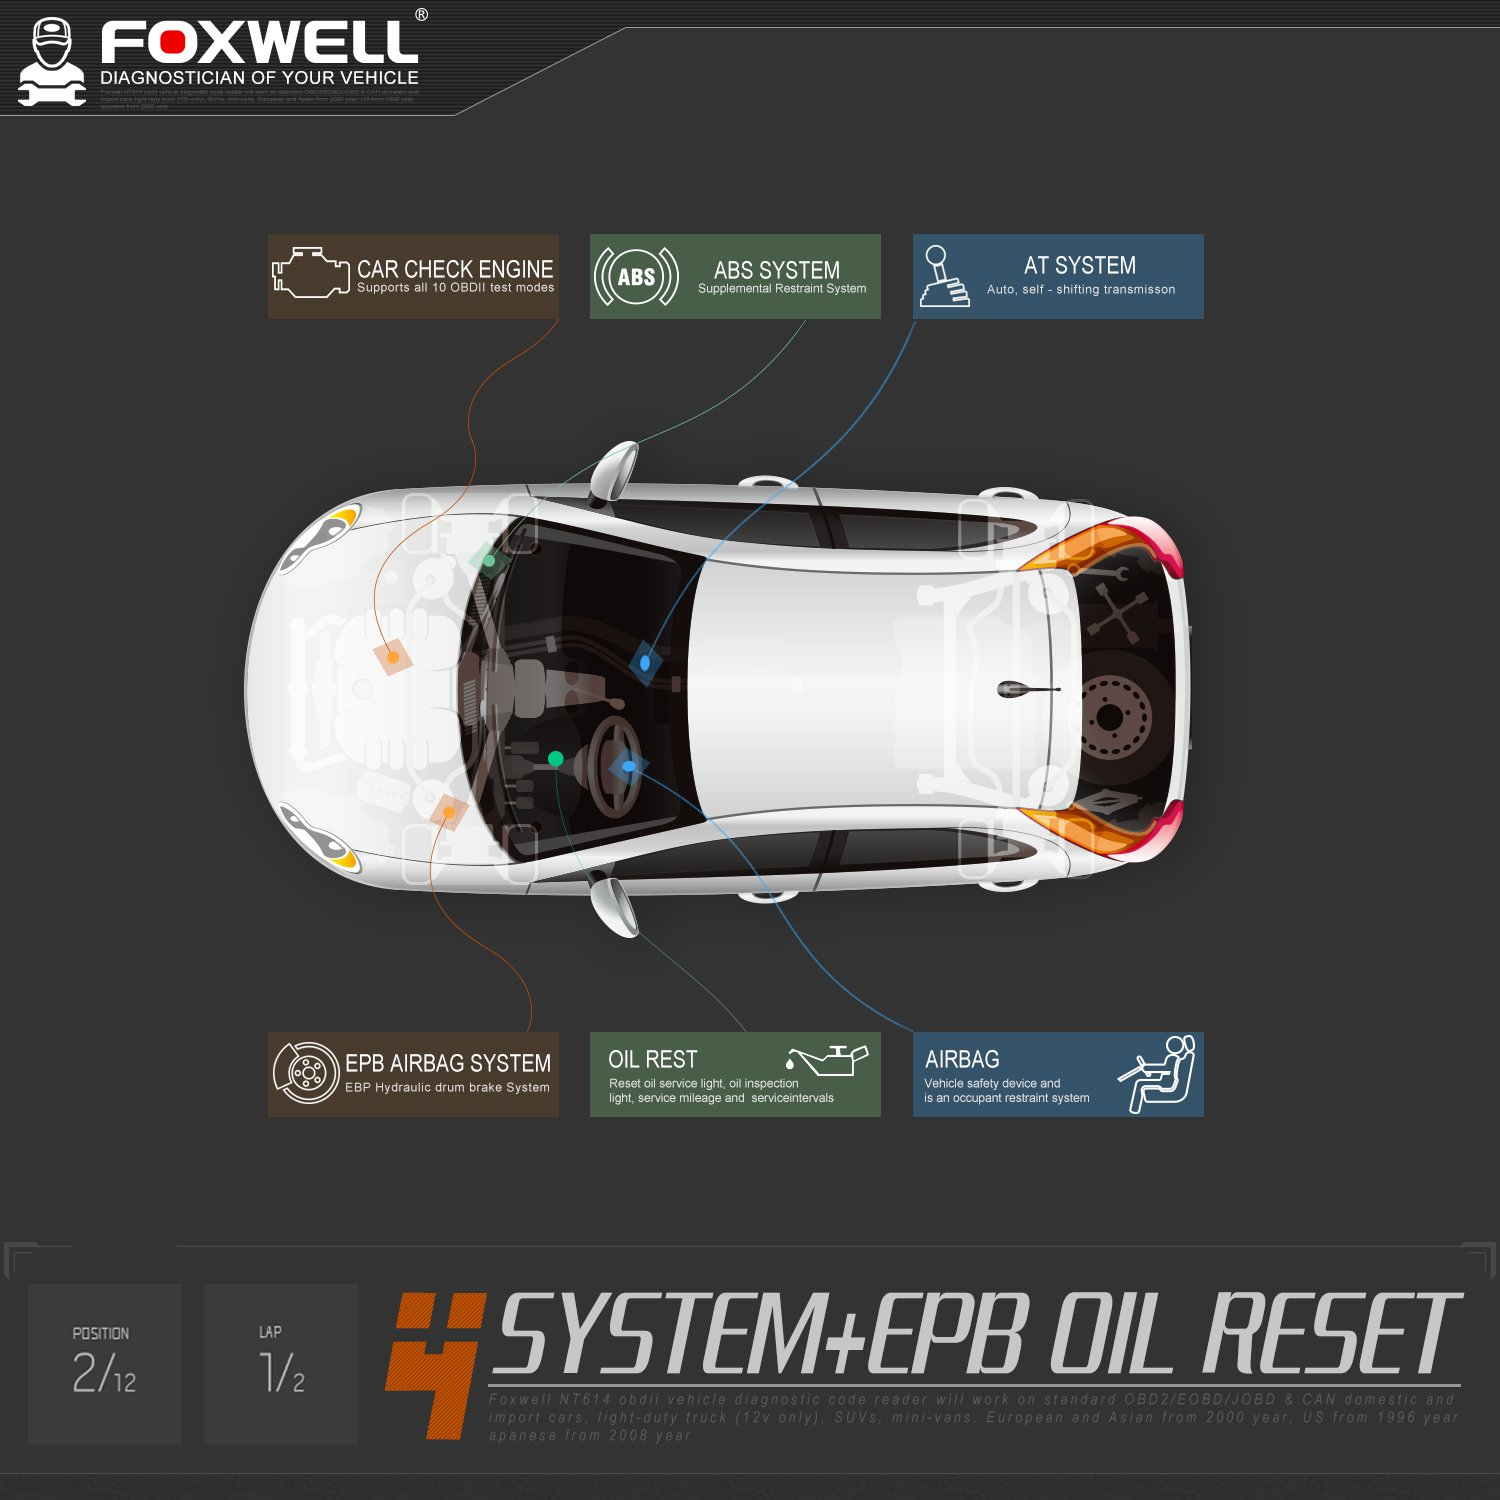 FOXWELL NT614 Automotive Scanner All Brand 4 System OBDII OBD2 Code Readers Check Engine ABS Airbag Transmission + EPB Oil Reset Car Diagnostic Tool by FOXWELL (Image #2)